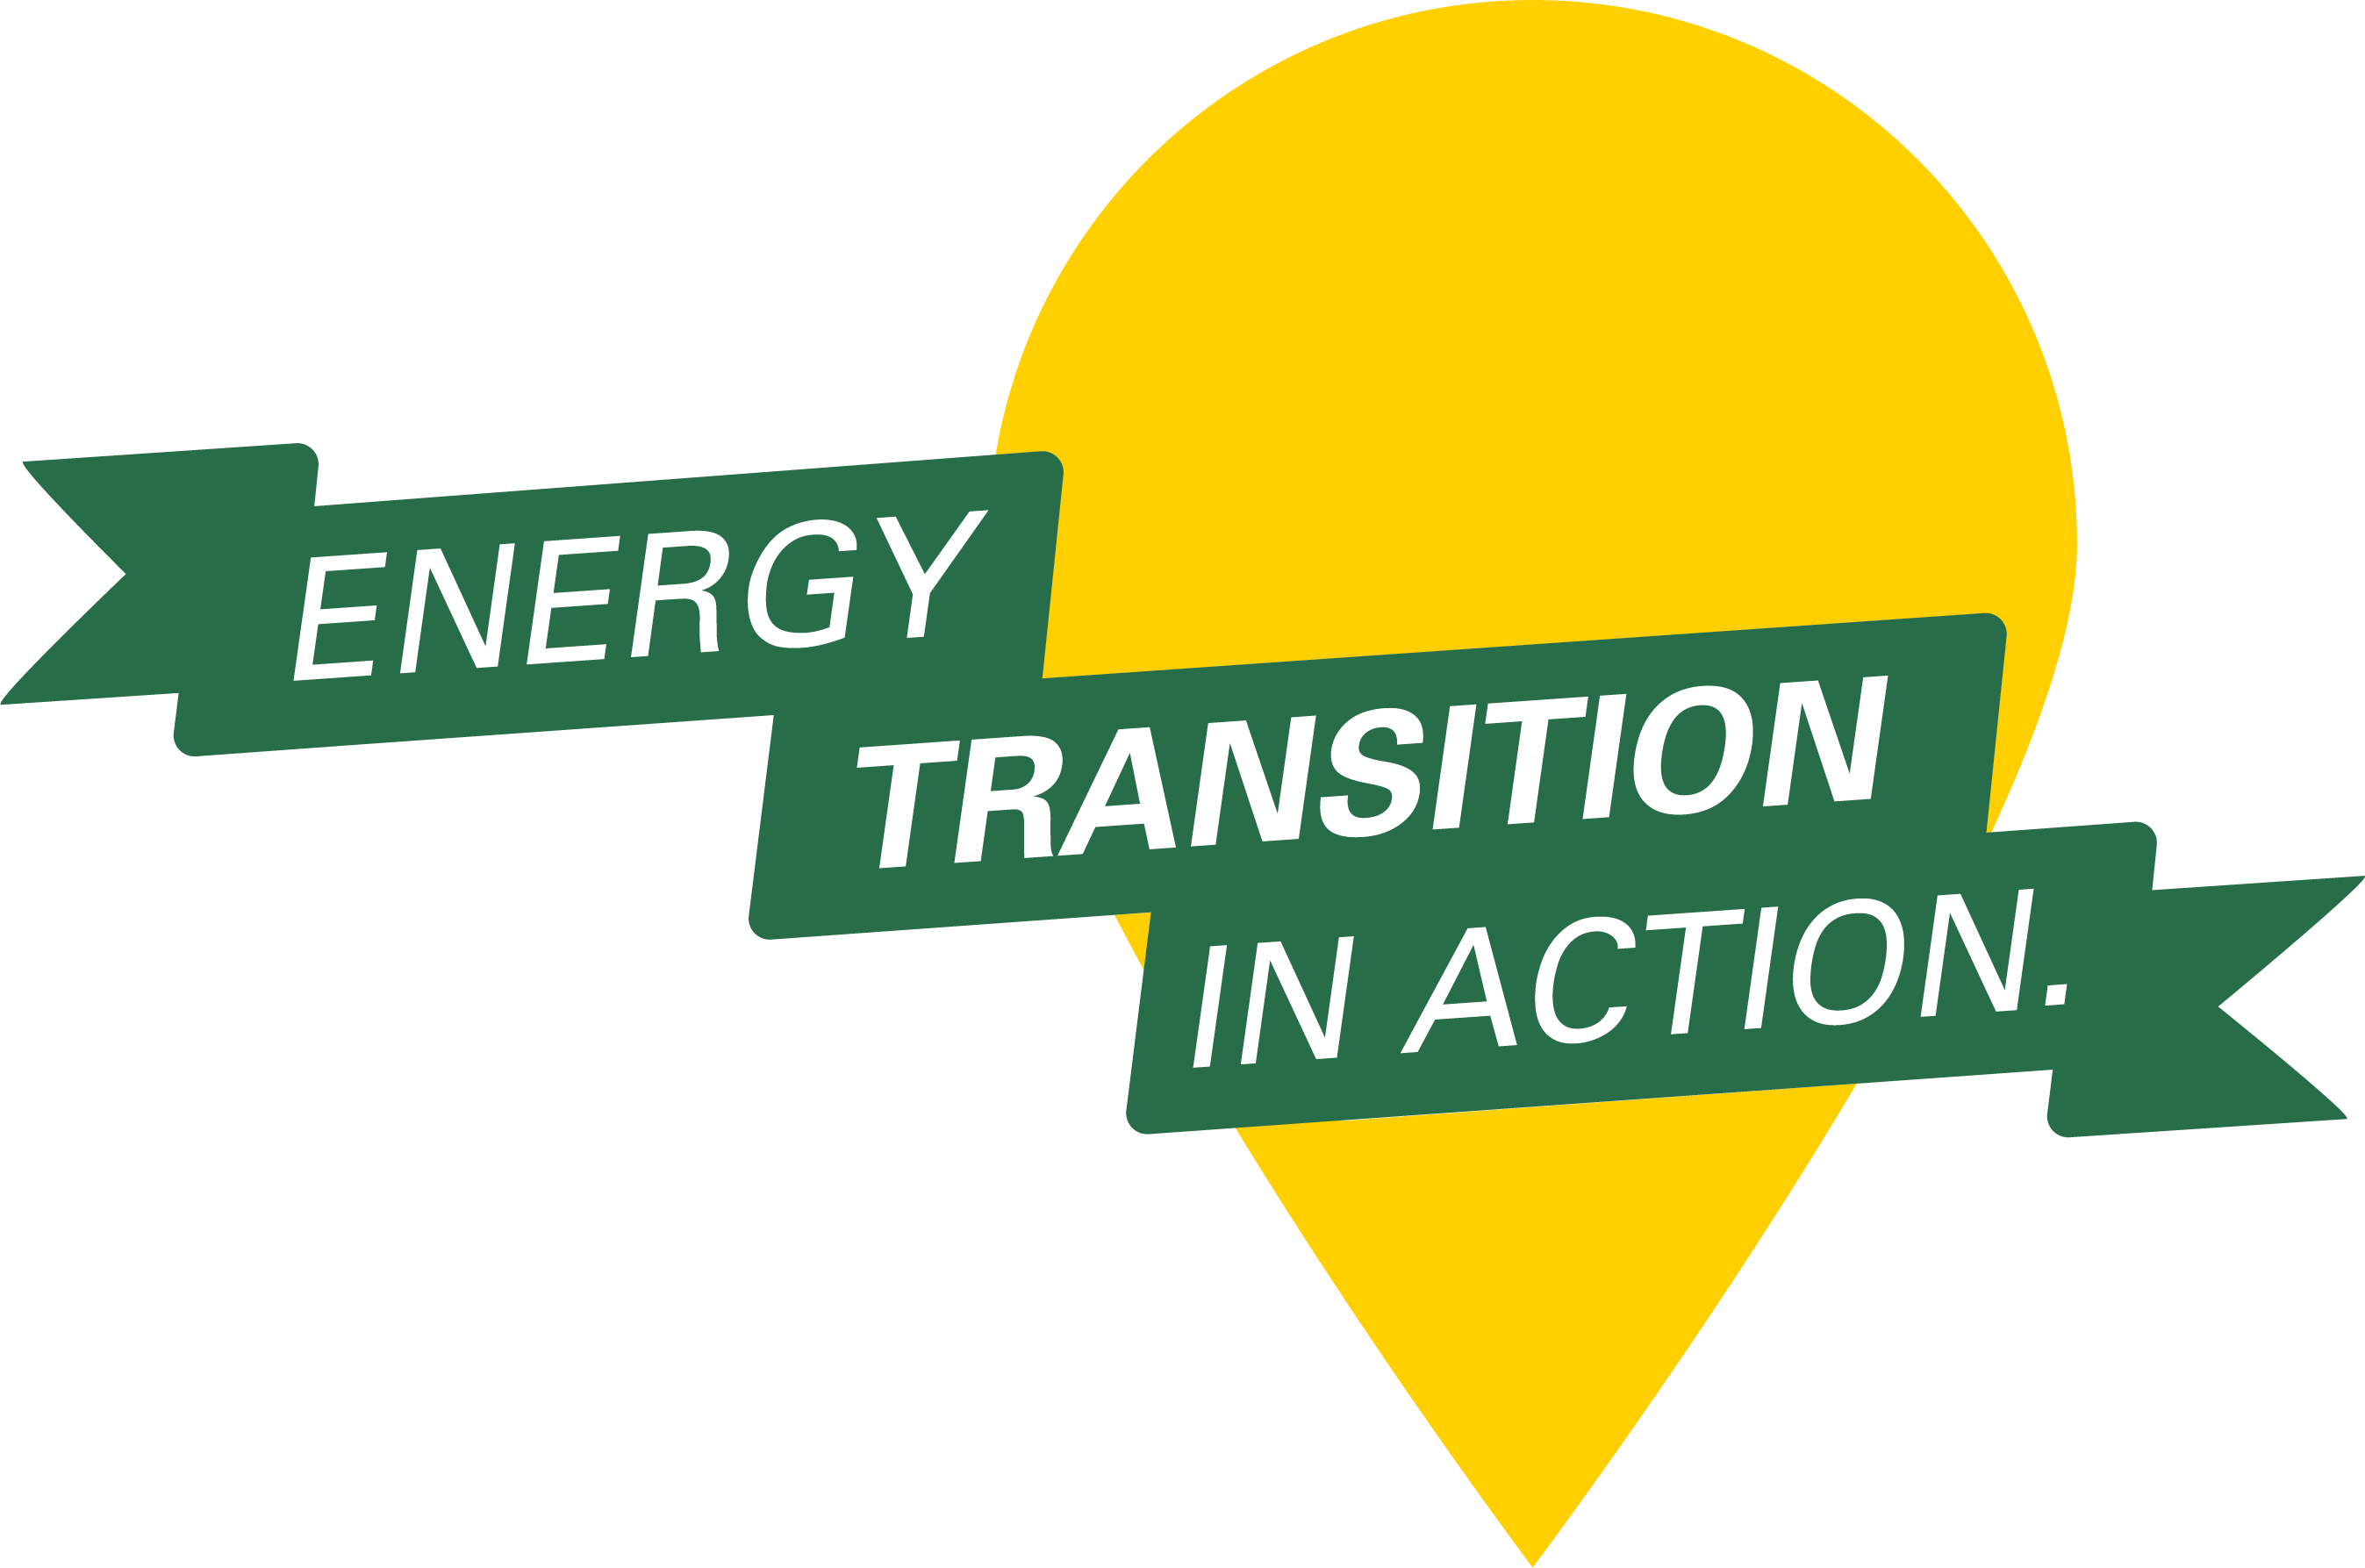 Logo of energy transition in action